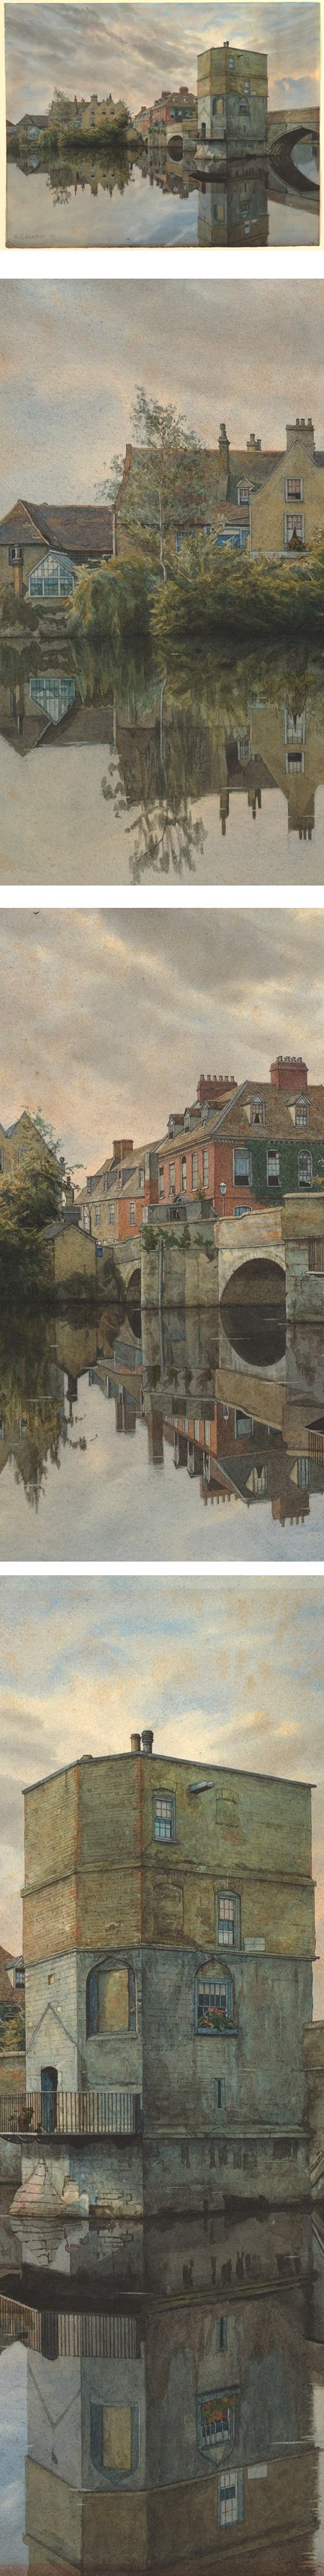 St. Ives Bridge (1895), St. Ives, Huntingdonshire; William Fraser Garden (1856–1921)  Watercolor, pen and gray ink, with touches of gouache on paper, 14×18 in (35x46cm).